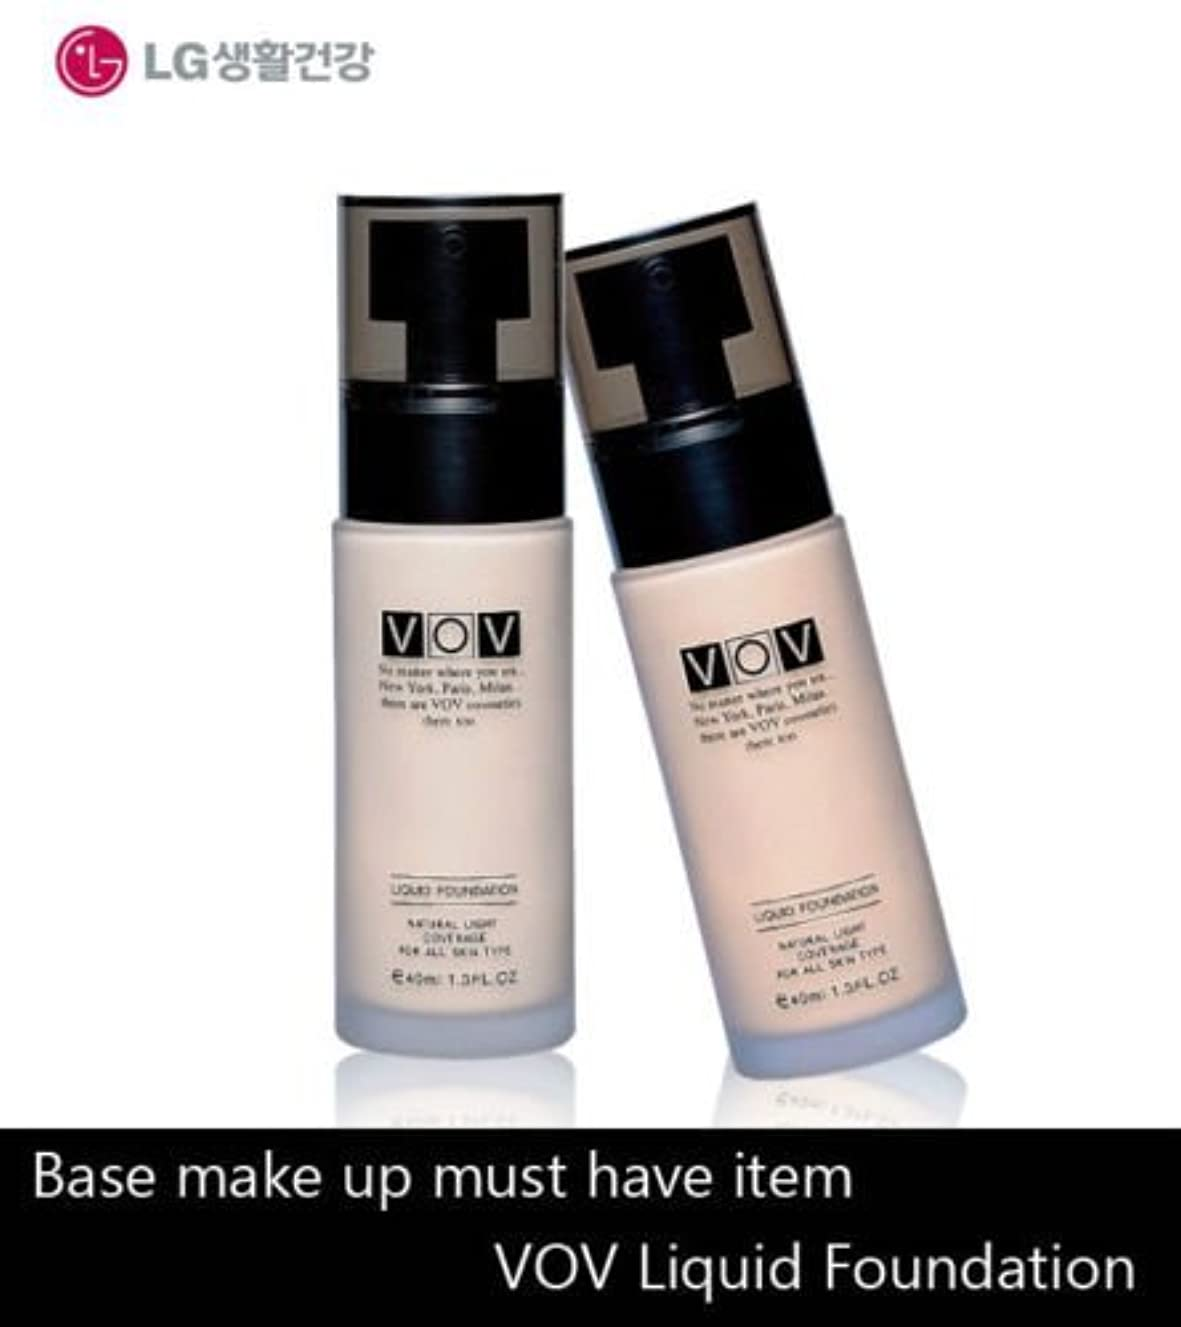 腐敗した寂しい歴史家LG Cosmetics VOV Liquid Foundation 40ml/Make-Up Base/Korea Cosmetic (#21 Natural Beige) [並行輸入品]